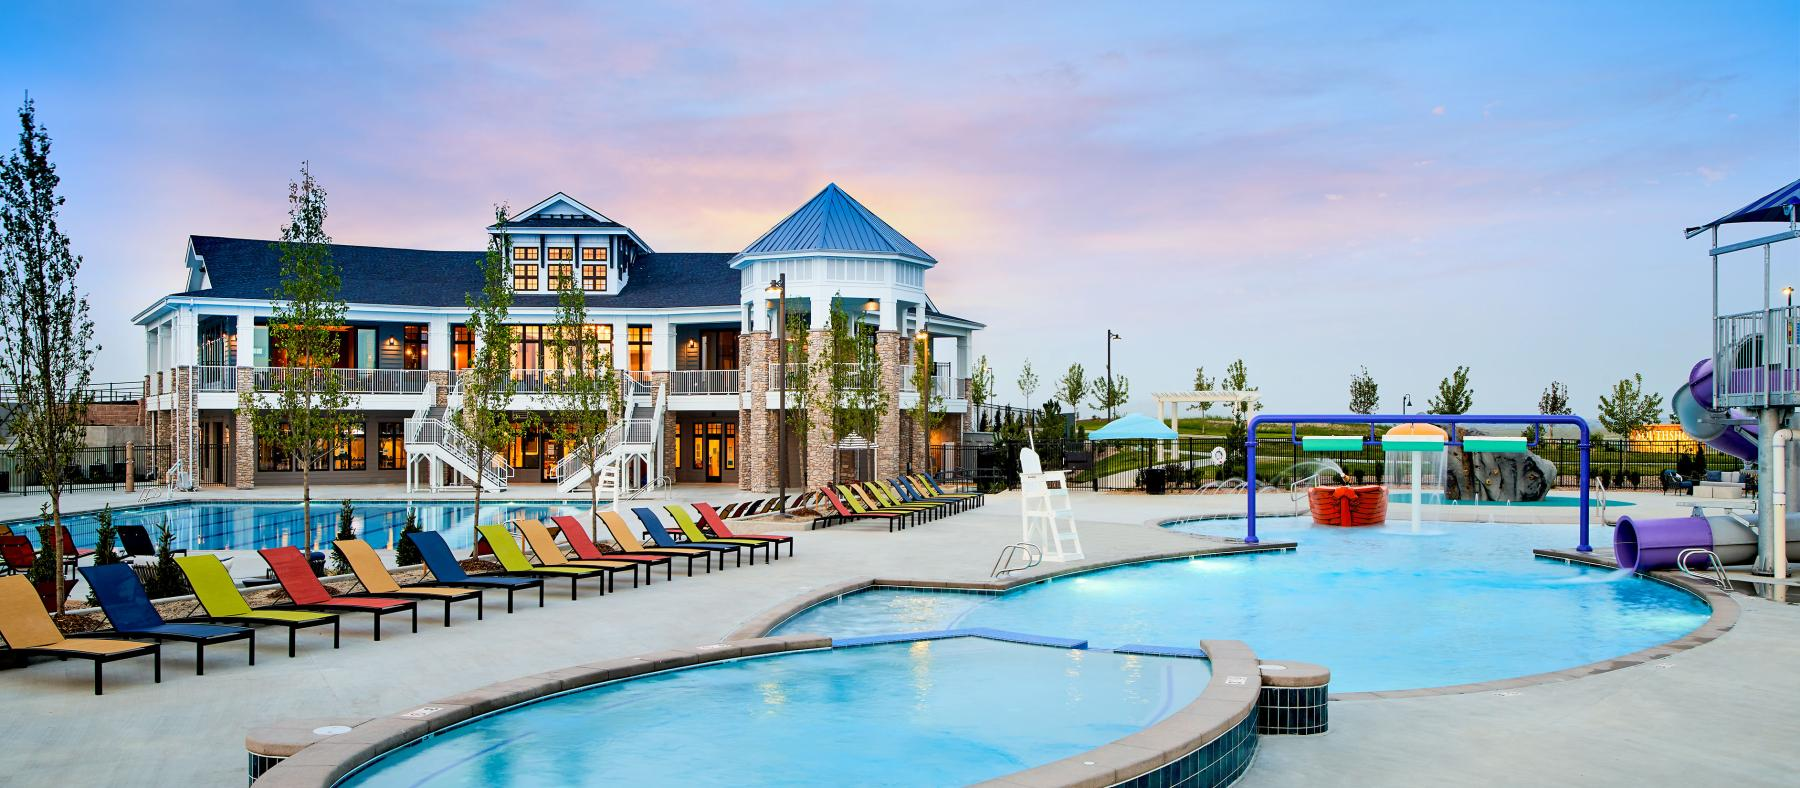 Splash pad, water slide, and lap pool at The Lighthouse amenity center